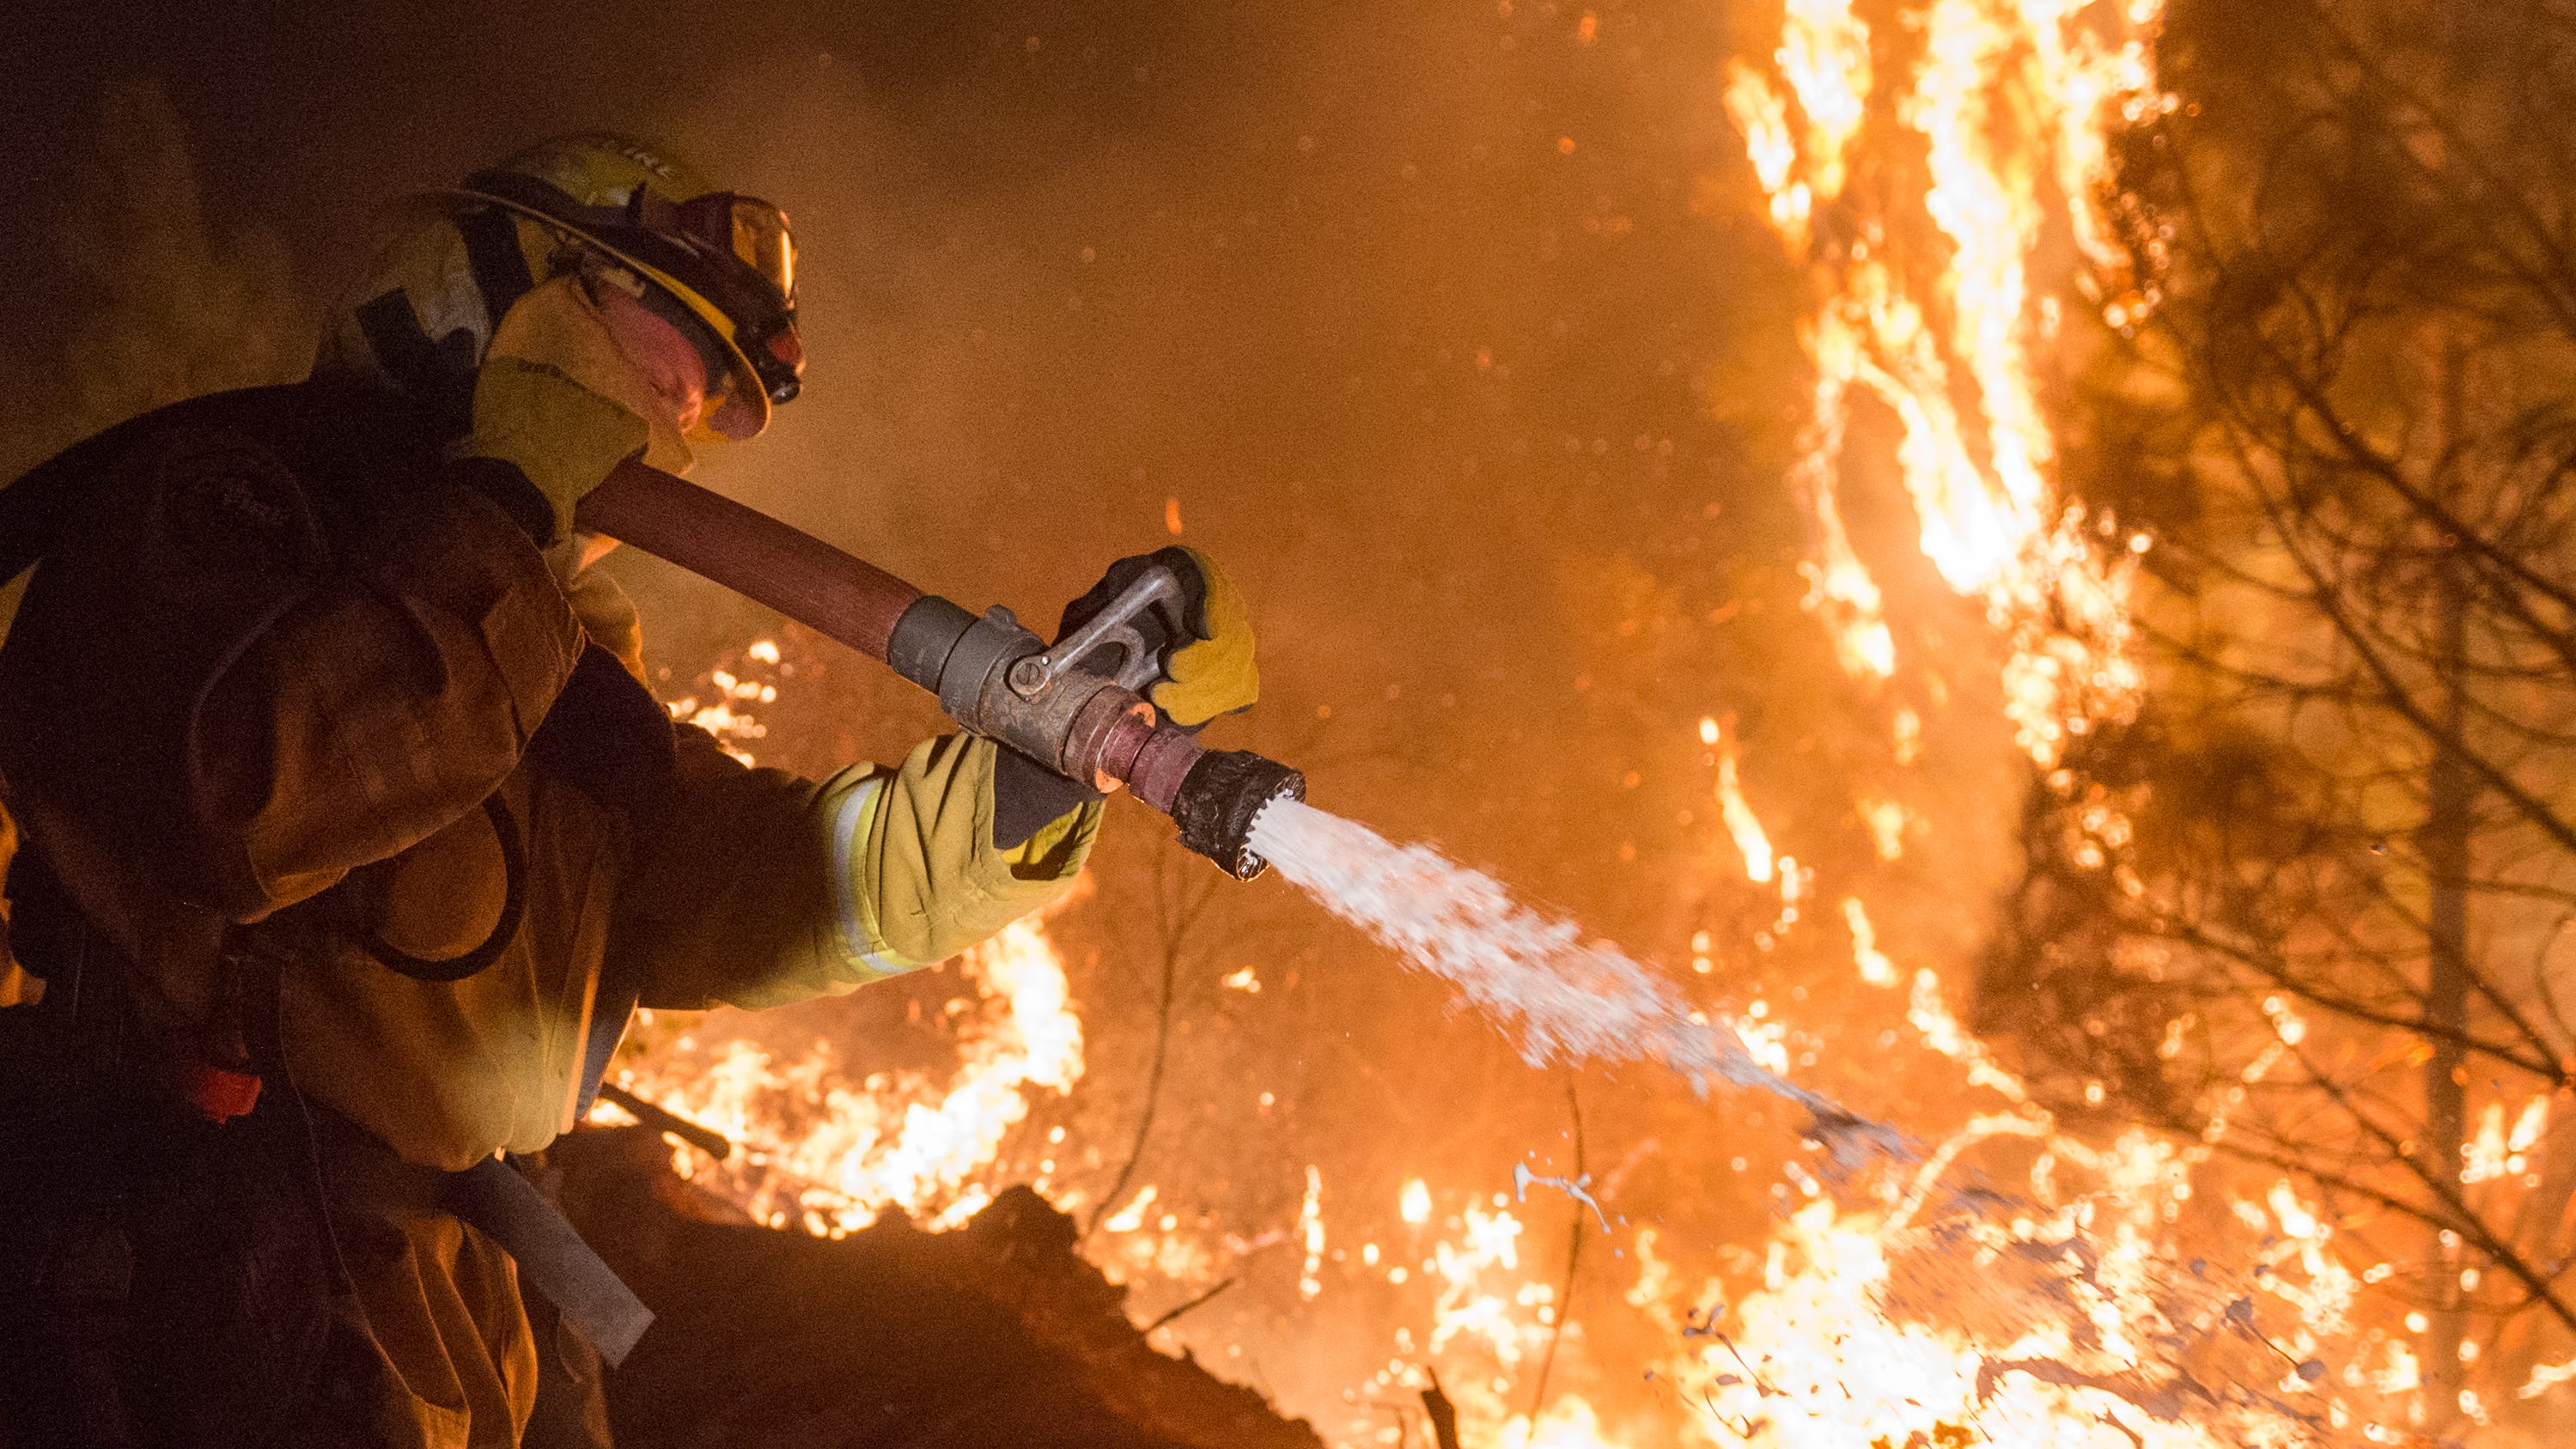 Firefighters work to control the Camp Fire north of Oroville, Calif., Wednesday, Nov. 14, 2018.